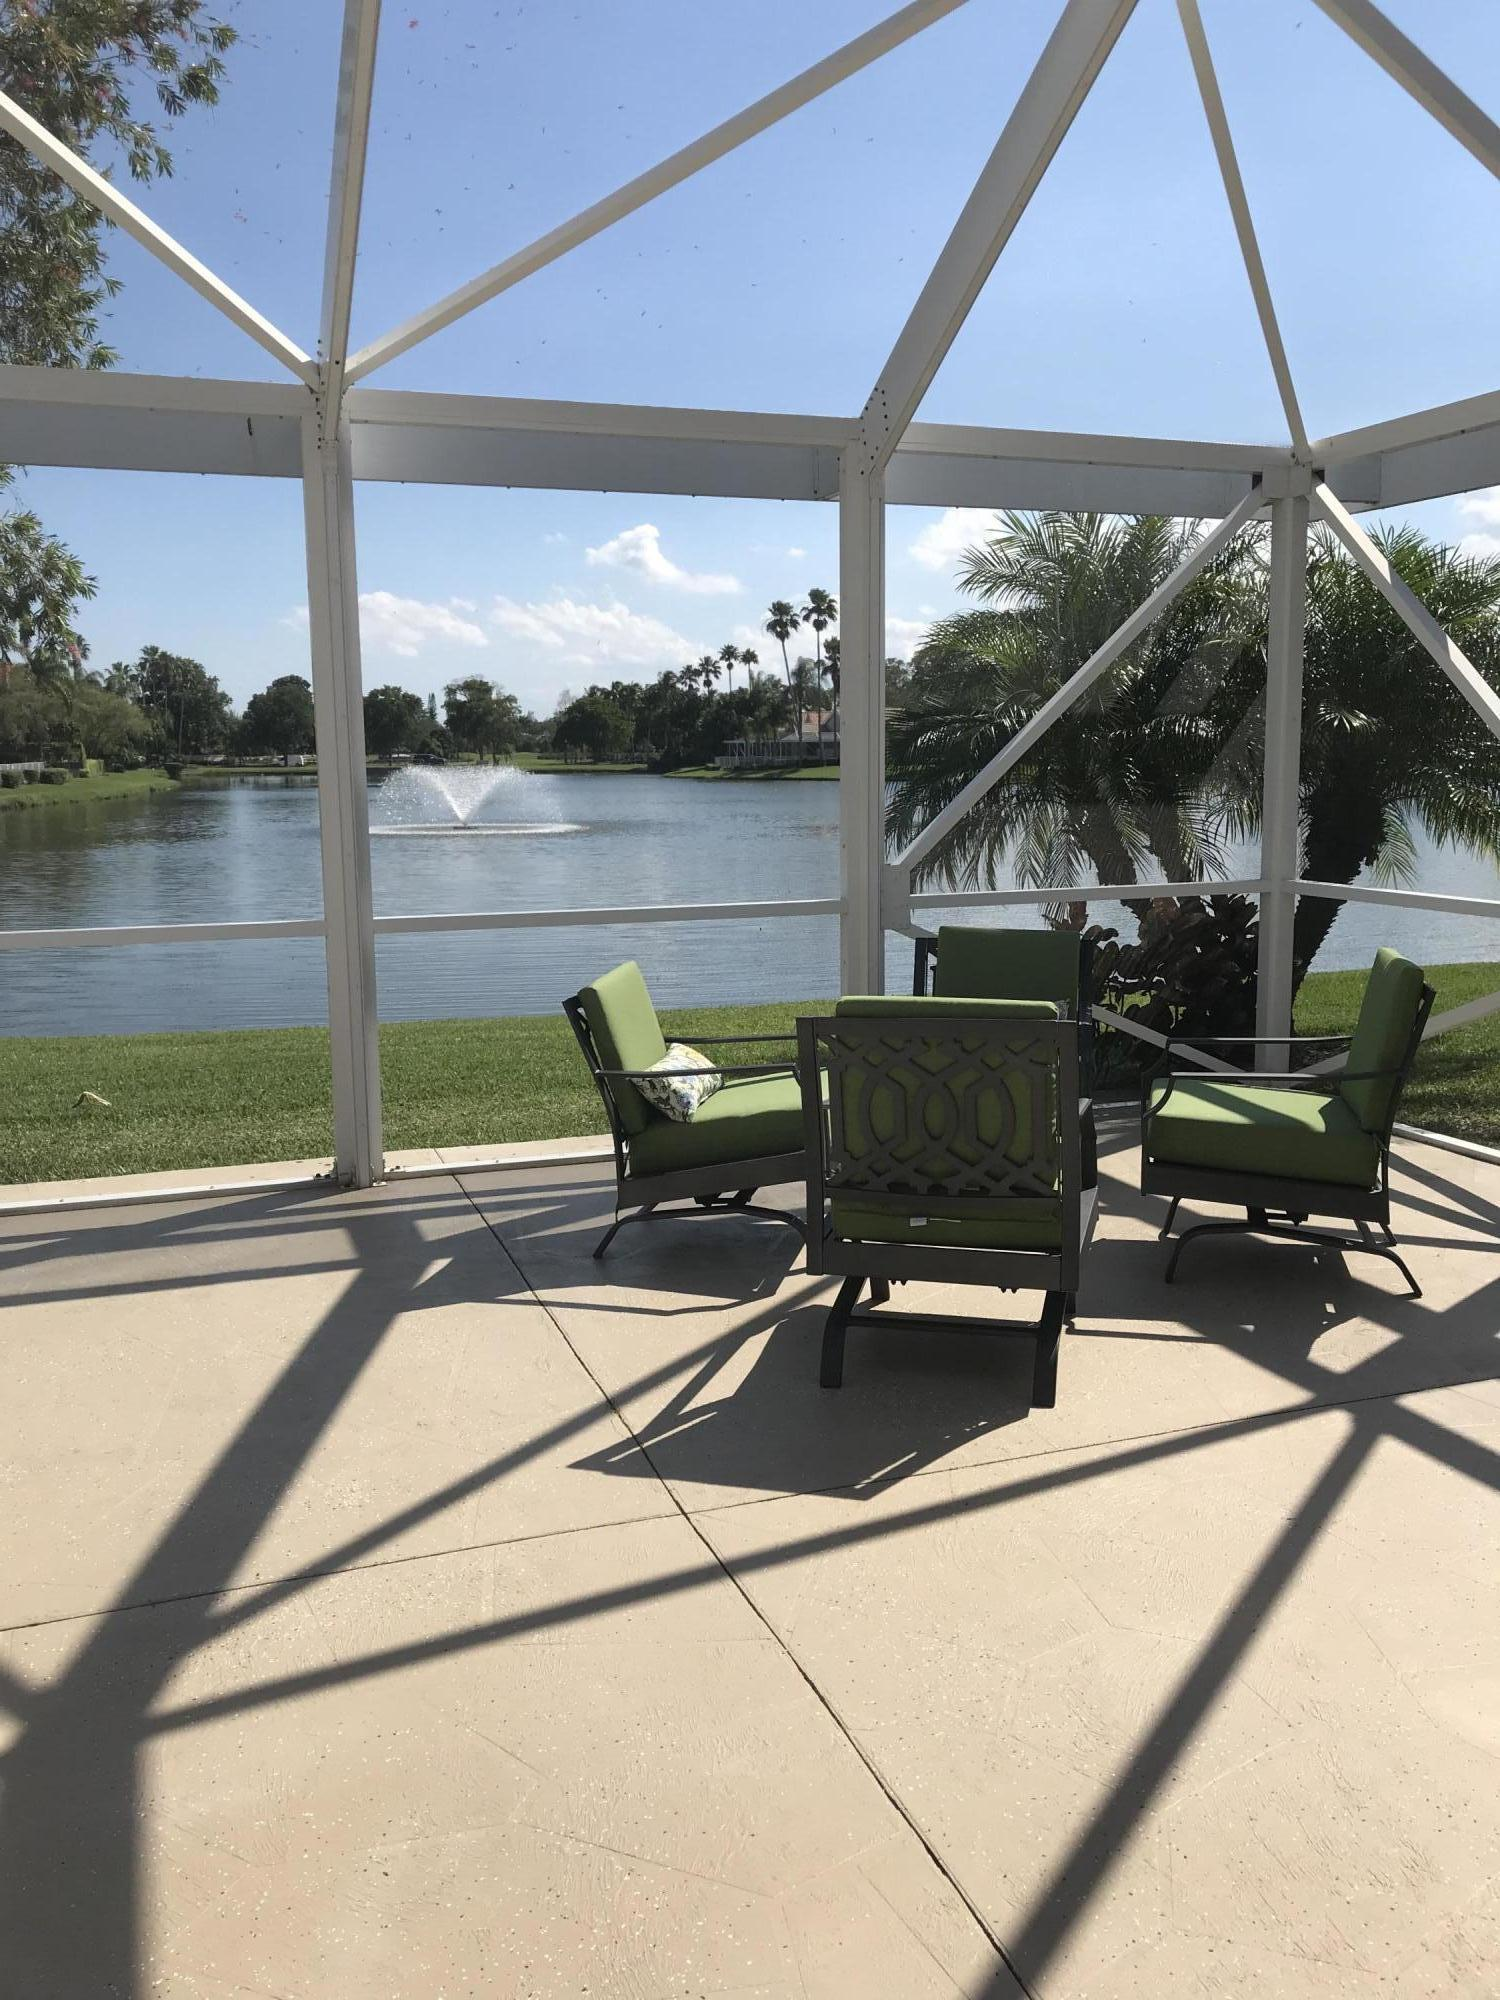 202 Eagleton Lake Boulevard, Palm Beach Gardens, Florida 33418, 3 Bedrooms Bedrooms, ,2 BathroomsBathrooms,A,Single family,Eagleton Lake,RX-10521289